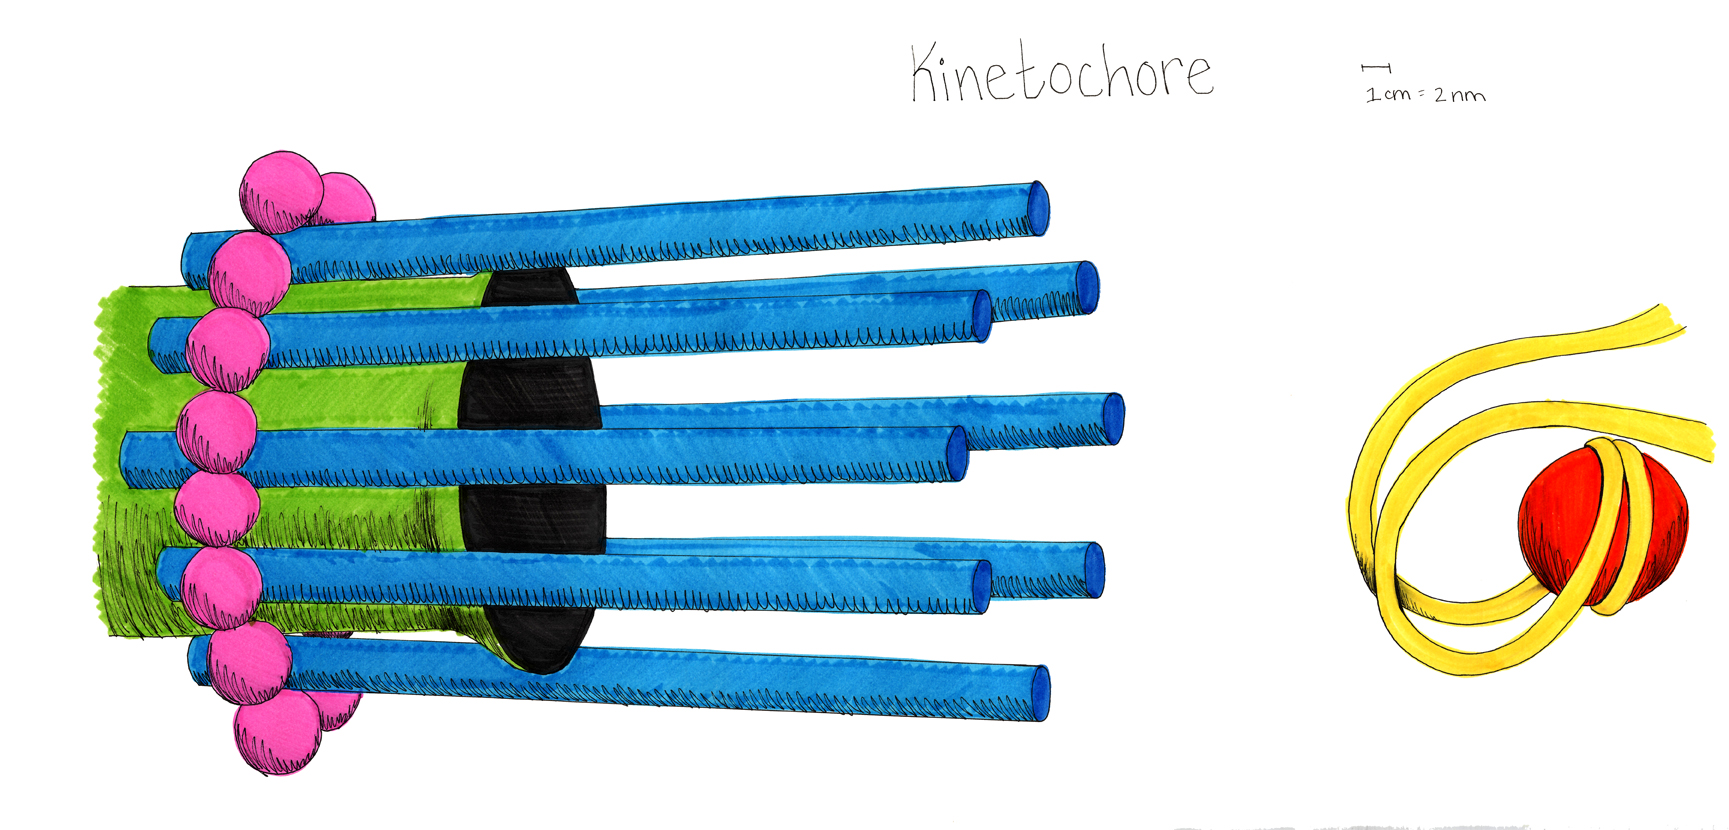 This drawing shows the structure of the kinetochore. A microtubule (green) with a flared end is surrounded by 8 thin rods/proteins (blue), which are then enclosed by 16 proteins (pink). This structure then connects (in a way that is not shown) to the DNA strand (yellow) while it is in a hook-like structure holding the cse4 nucleosome.